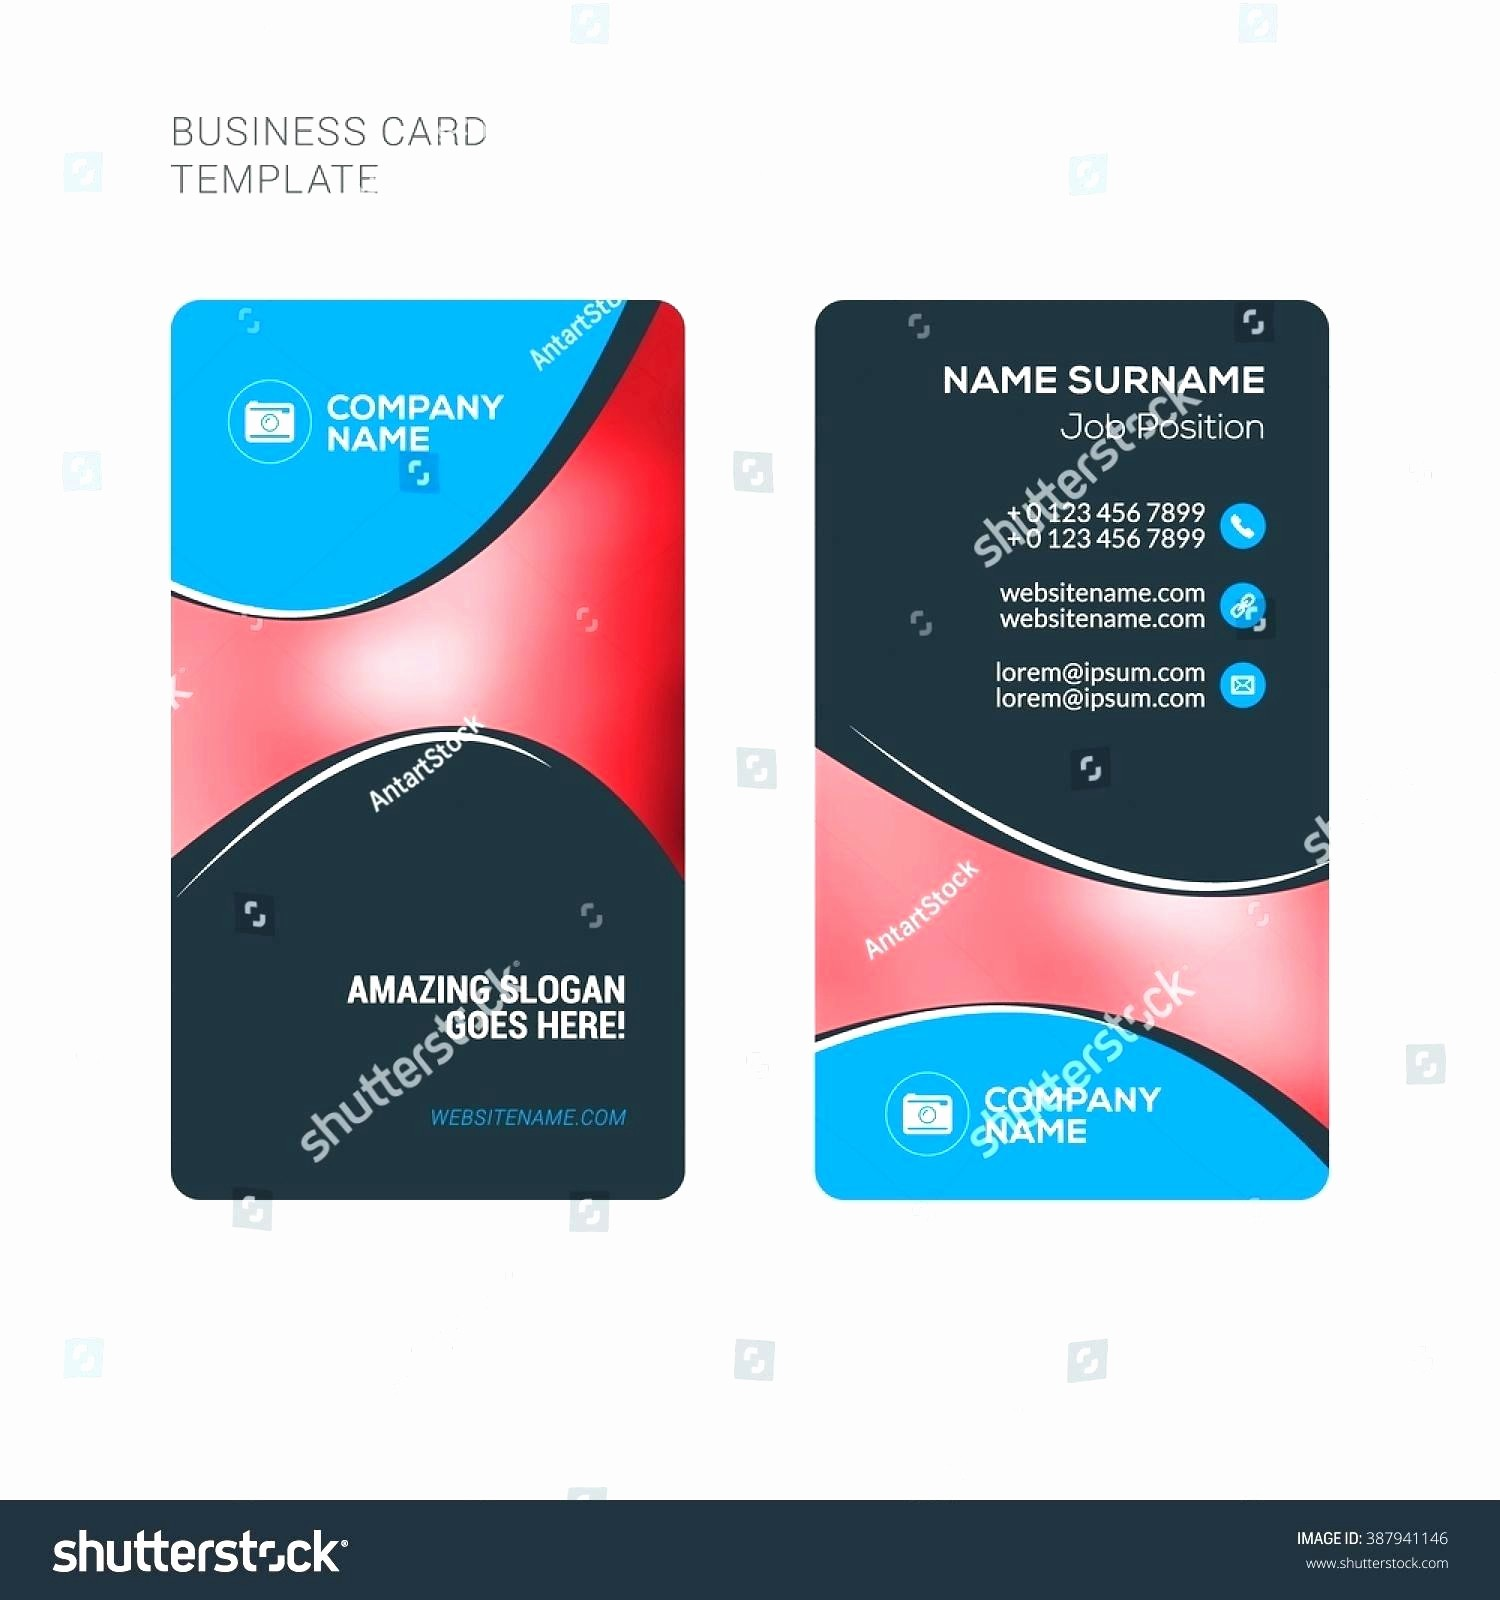 Microsoft Word Template Business Cards Fresh 2 Sided Business Card Template